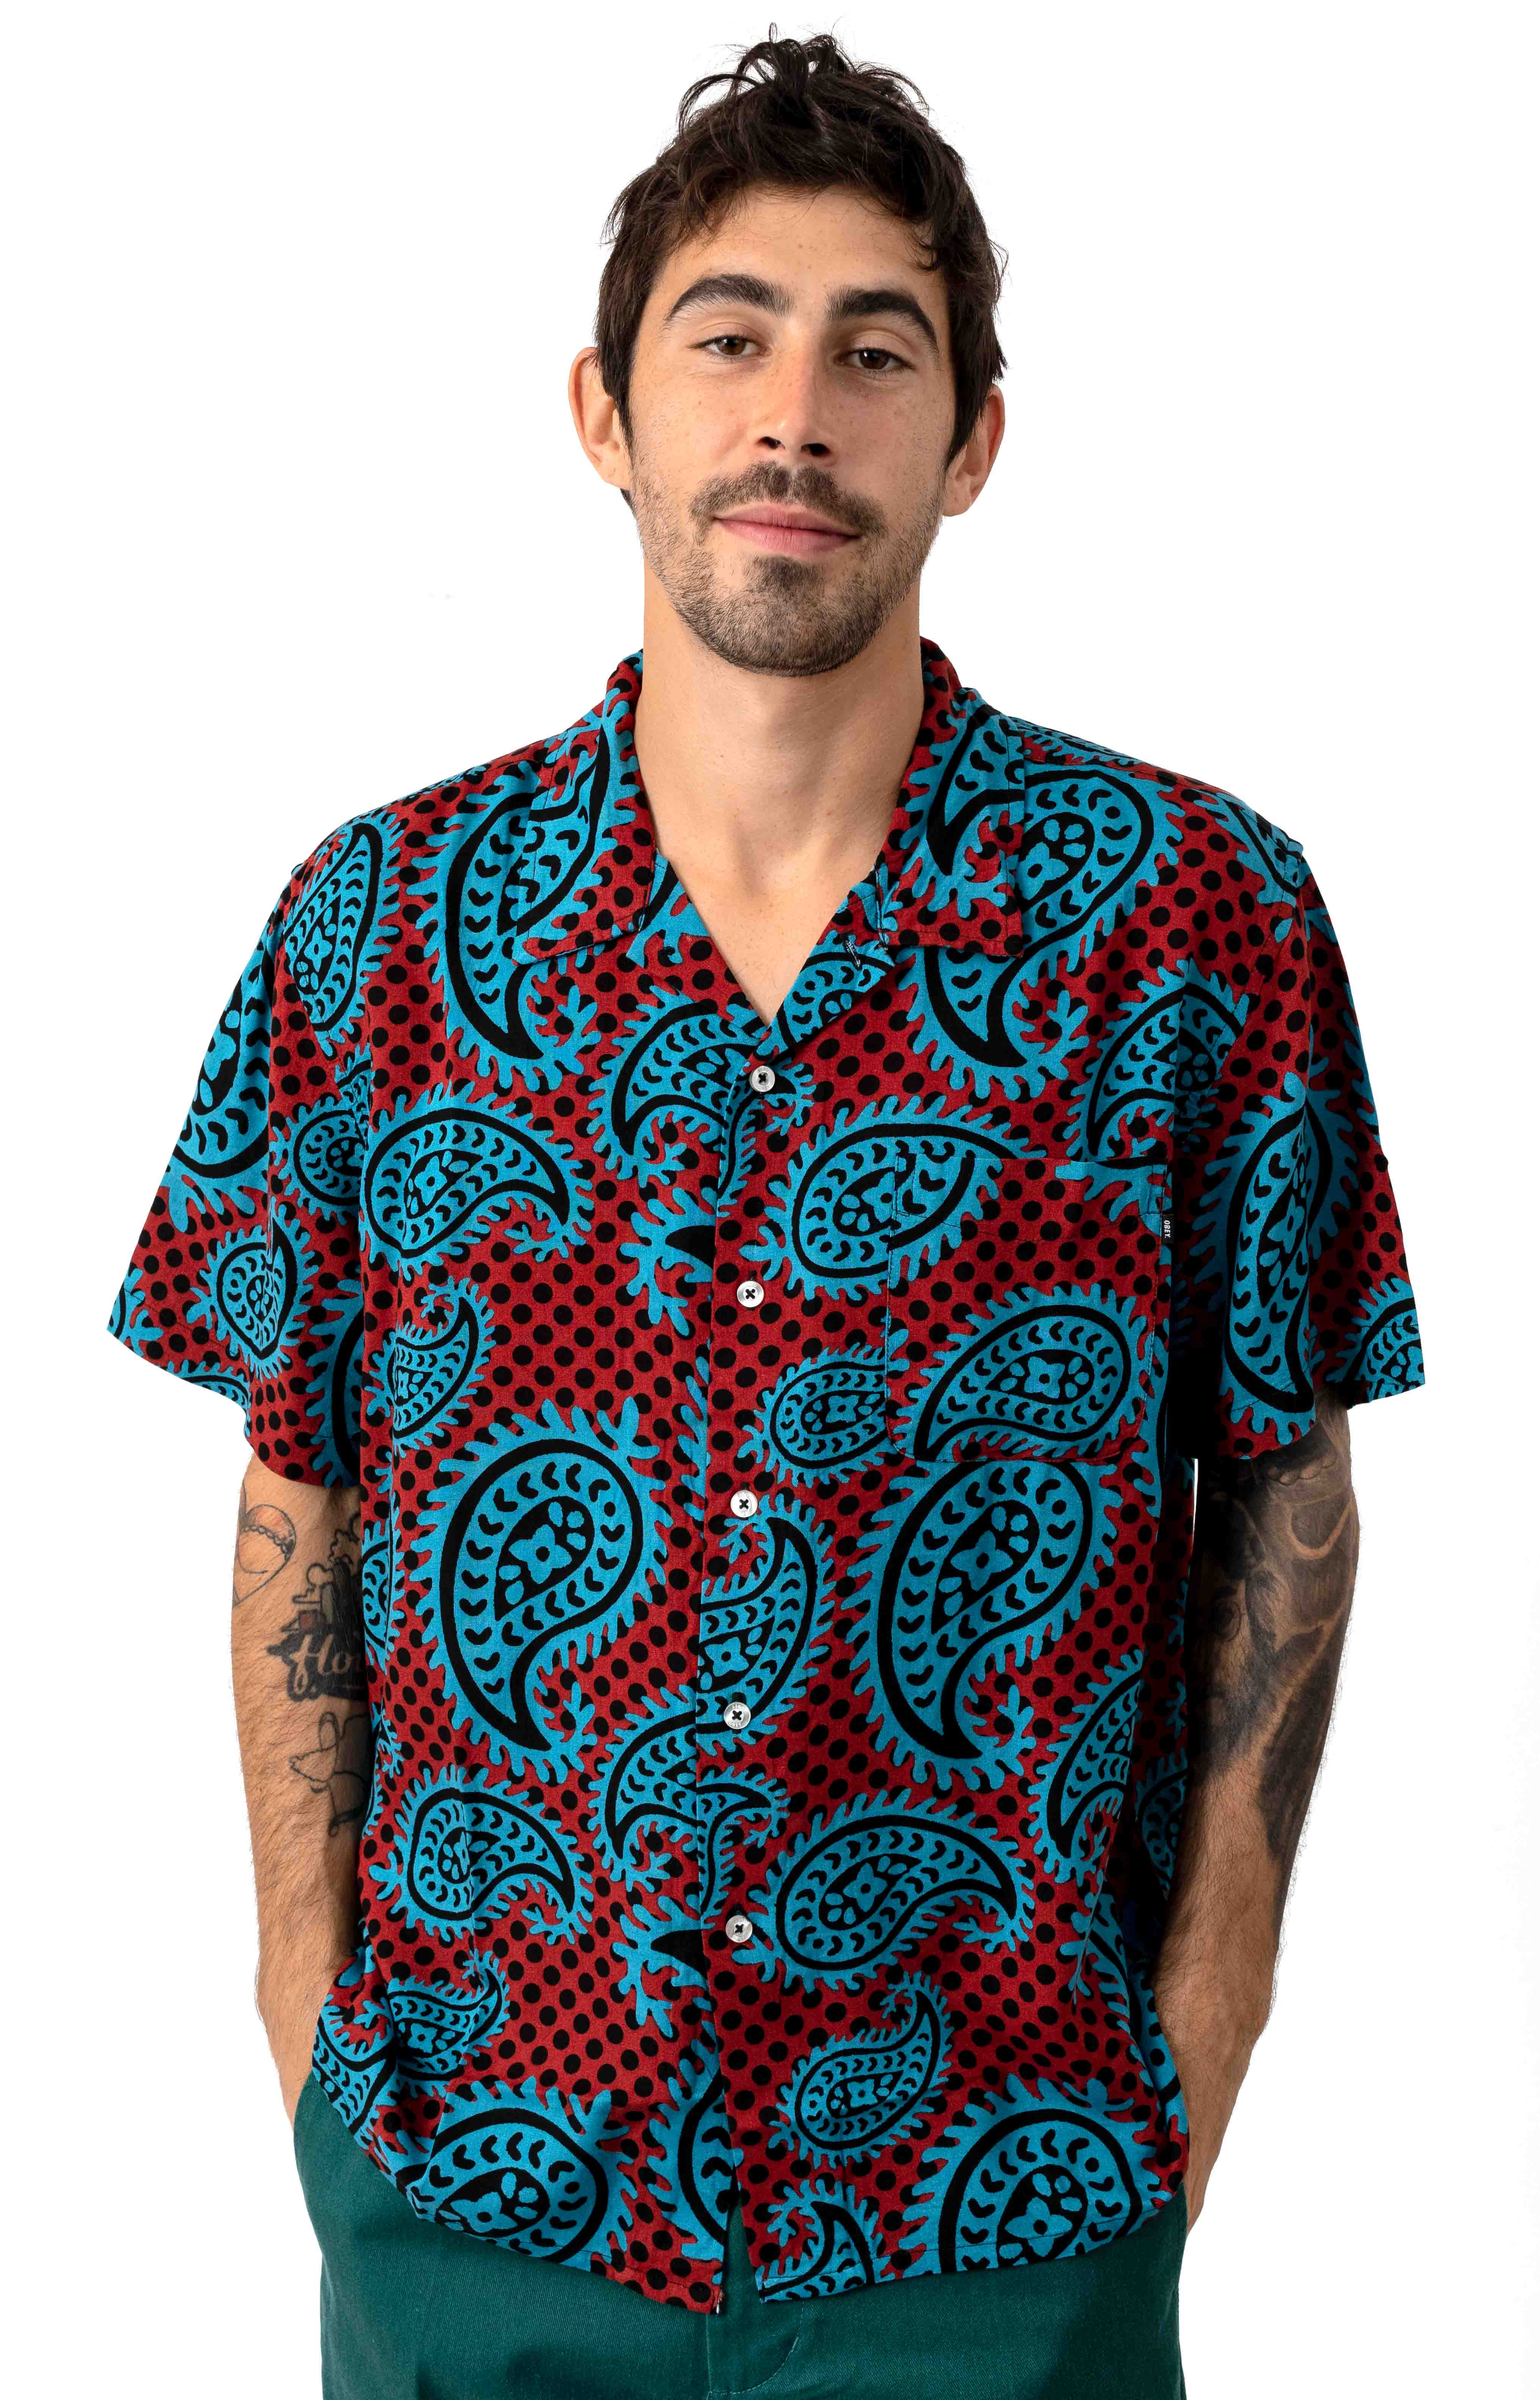 Eisley Woven Button-Up Shirt - Paisley Brick